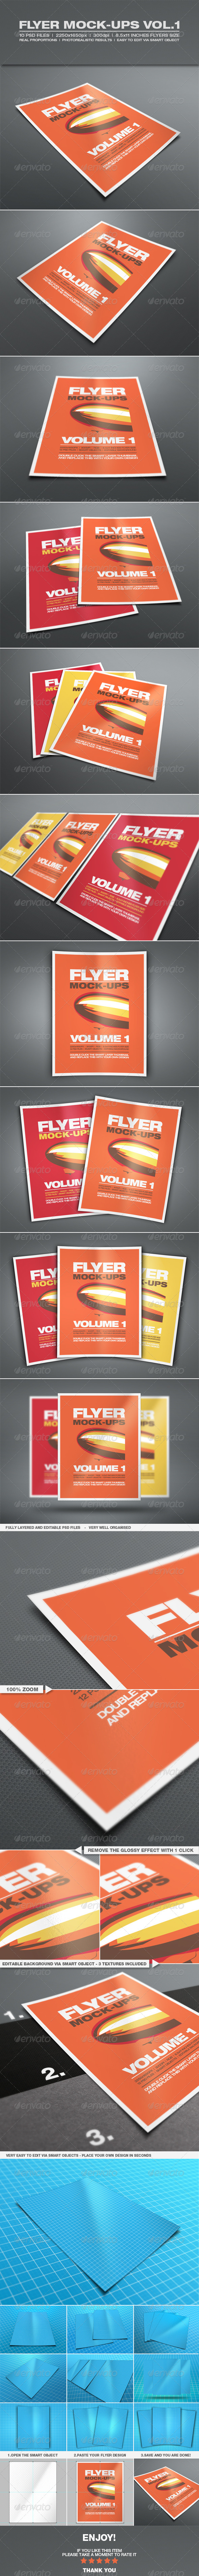 Flyer Mock-up Vol.1 - Flyers Print